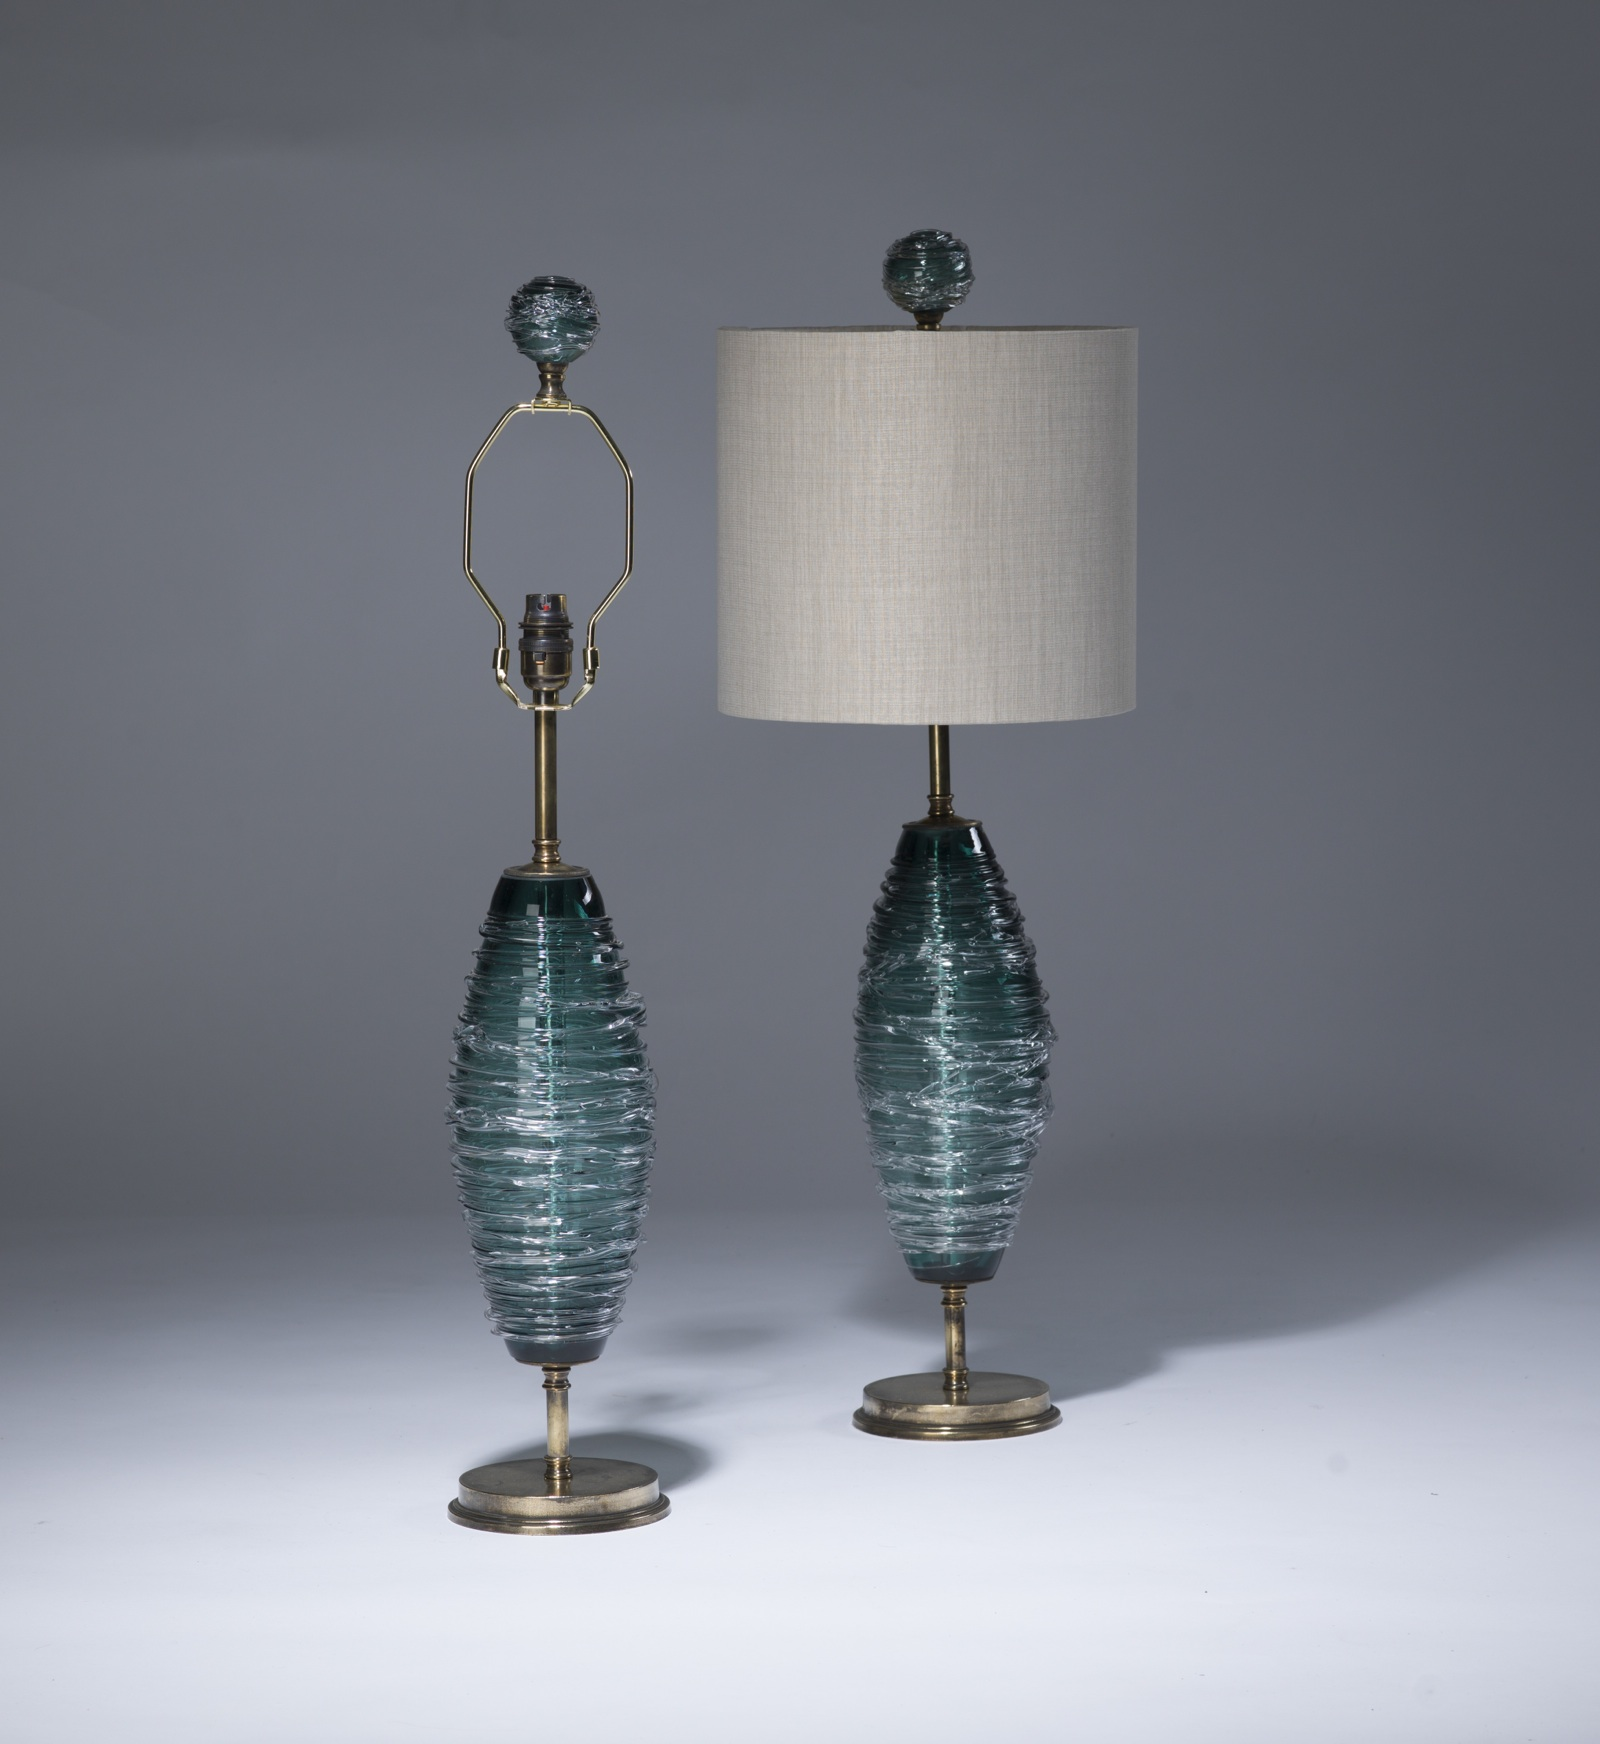 Pair Of Small Green Teal Swirl Glass Lamps On Distressed Brass Bases With  Matching Finials